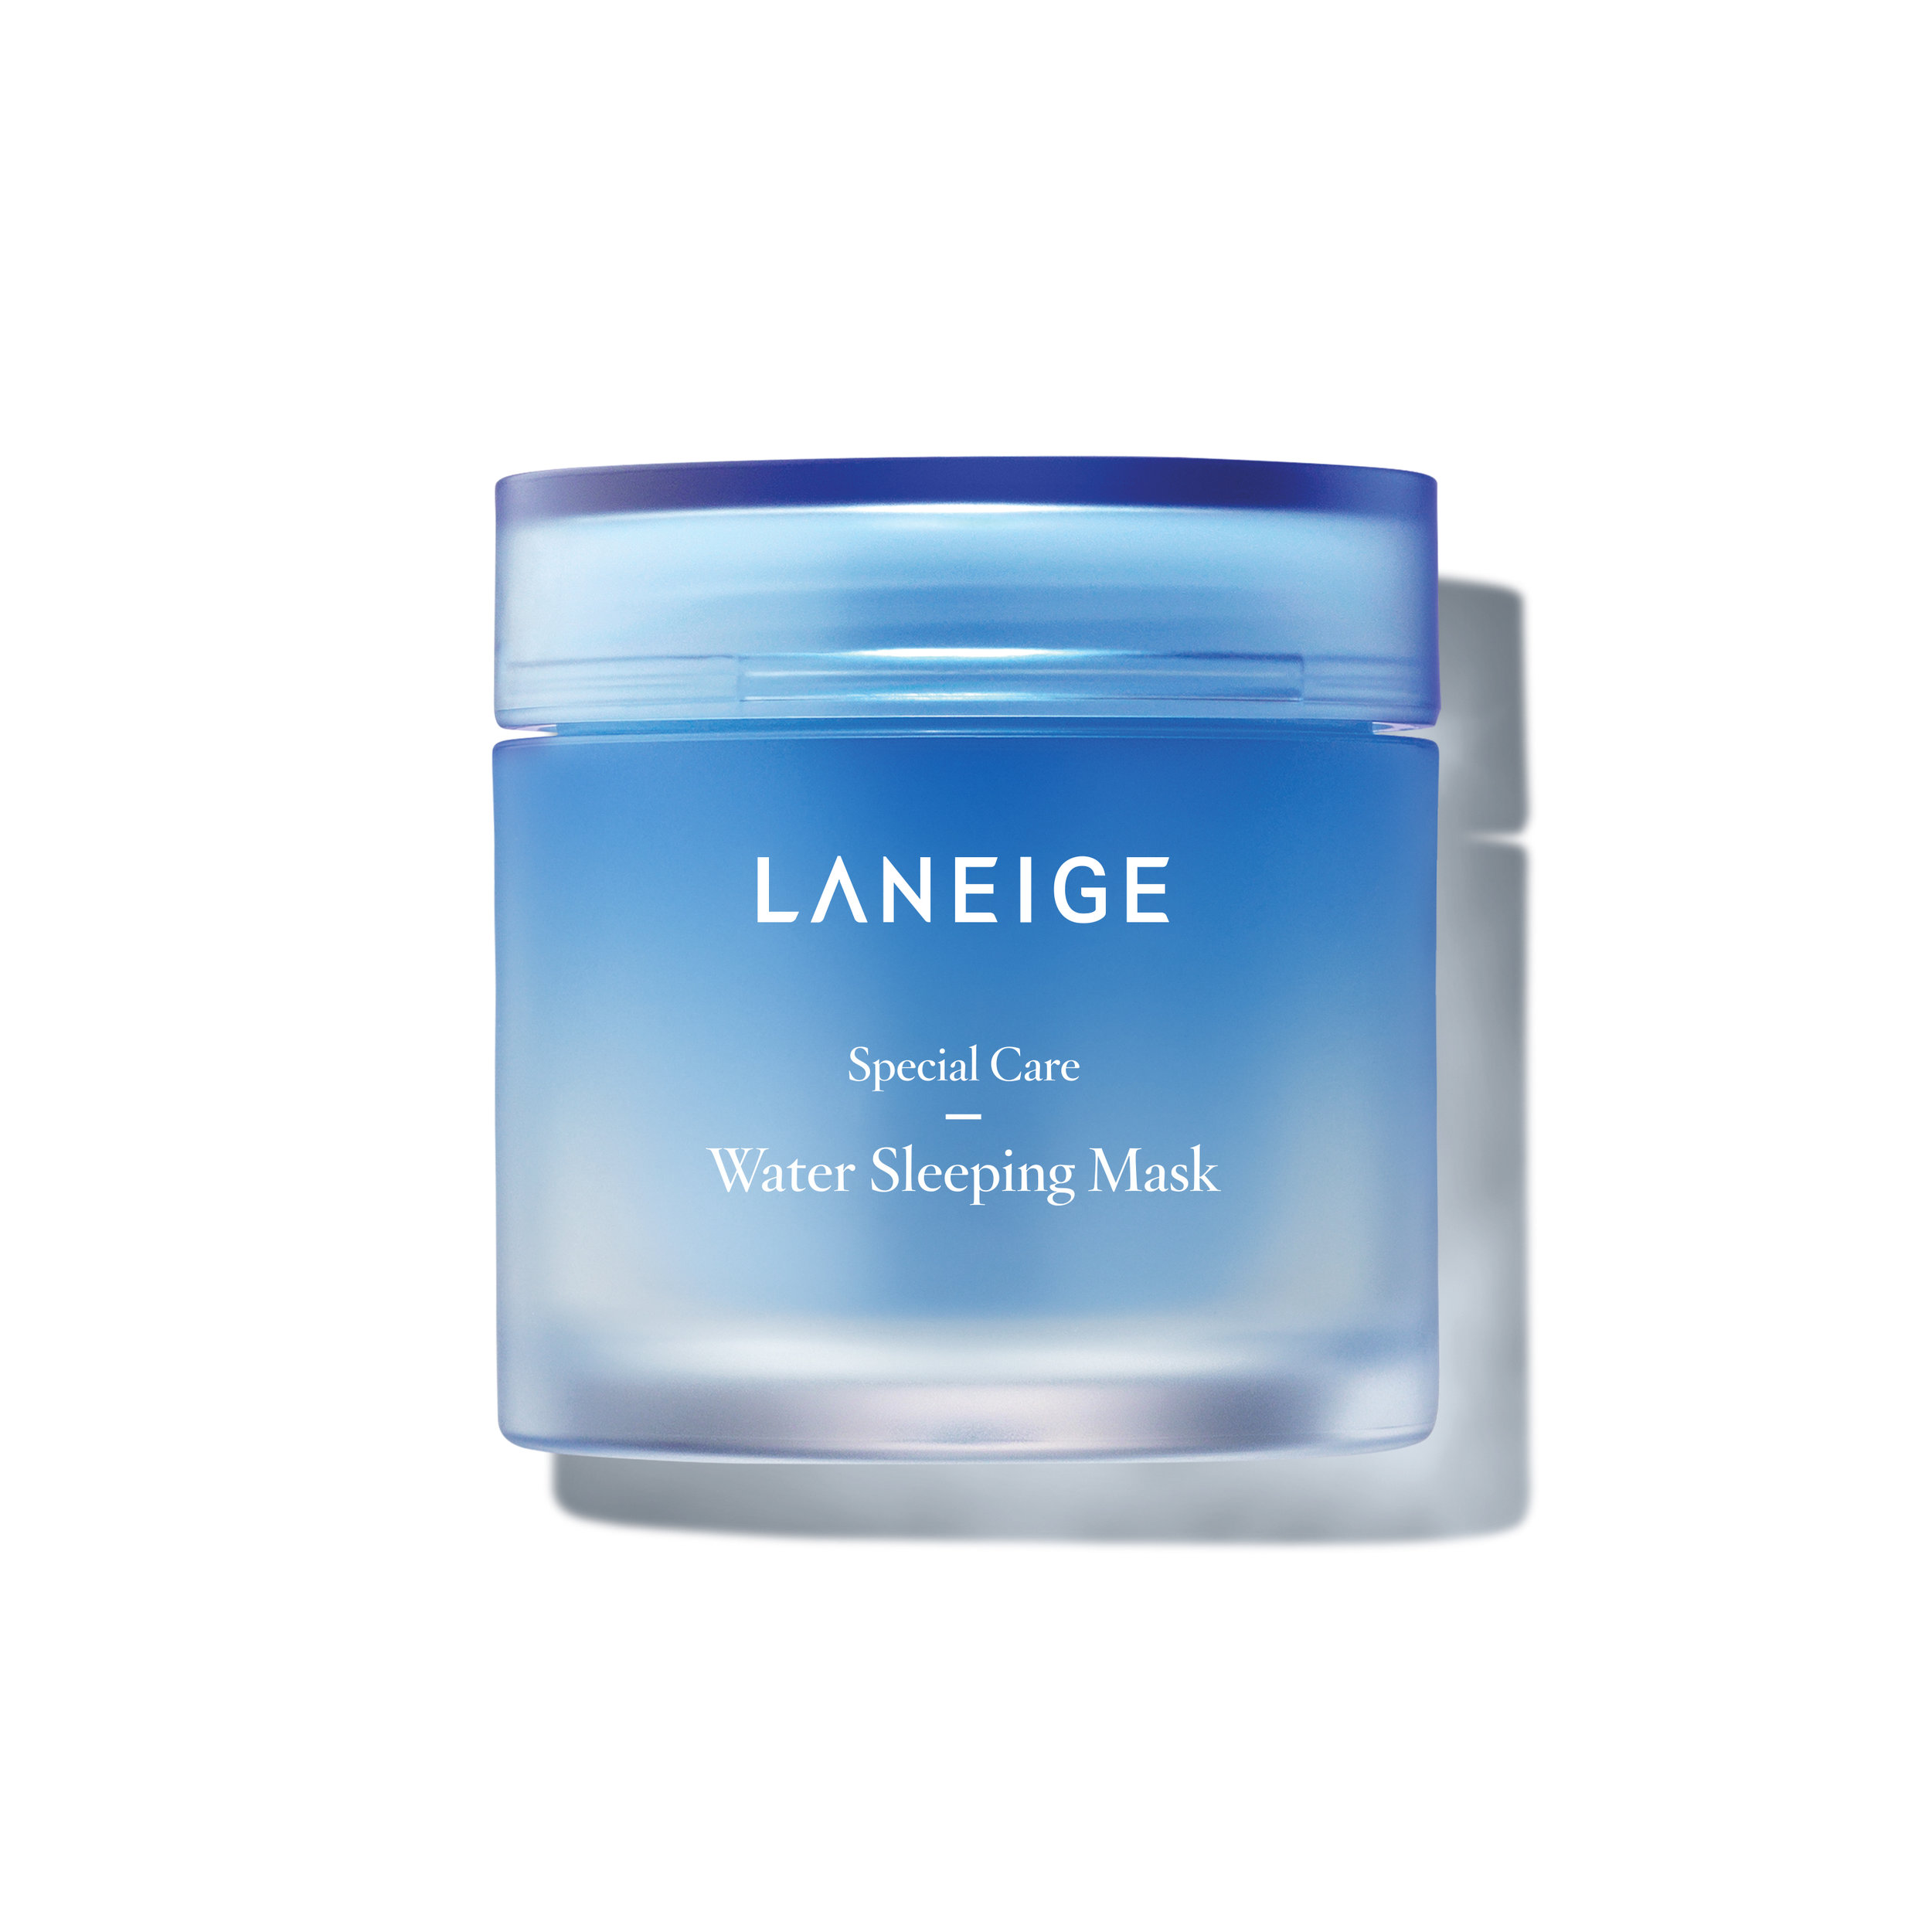 Water Sleeping Mask by Laneige